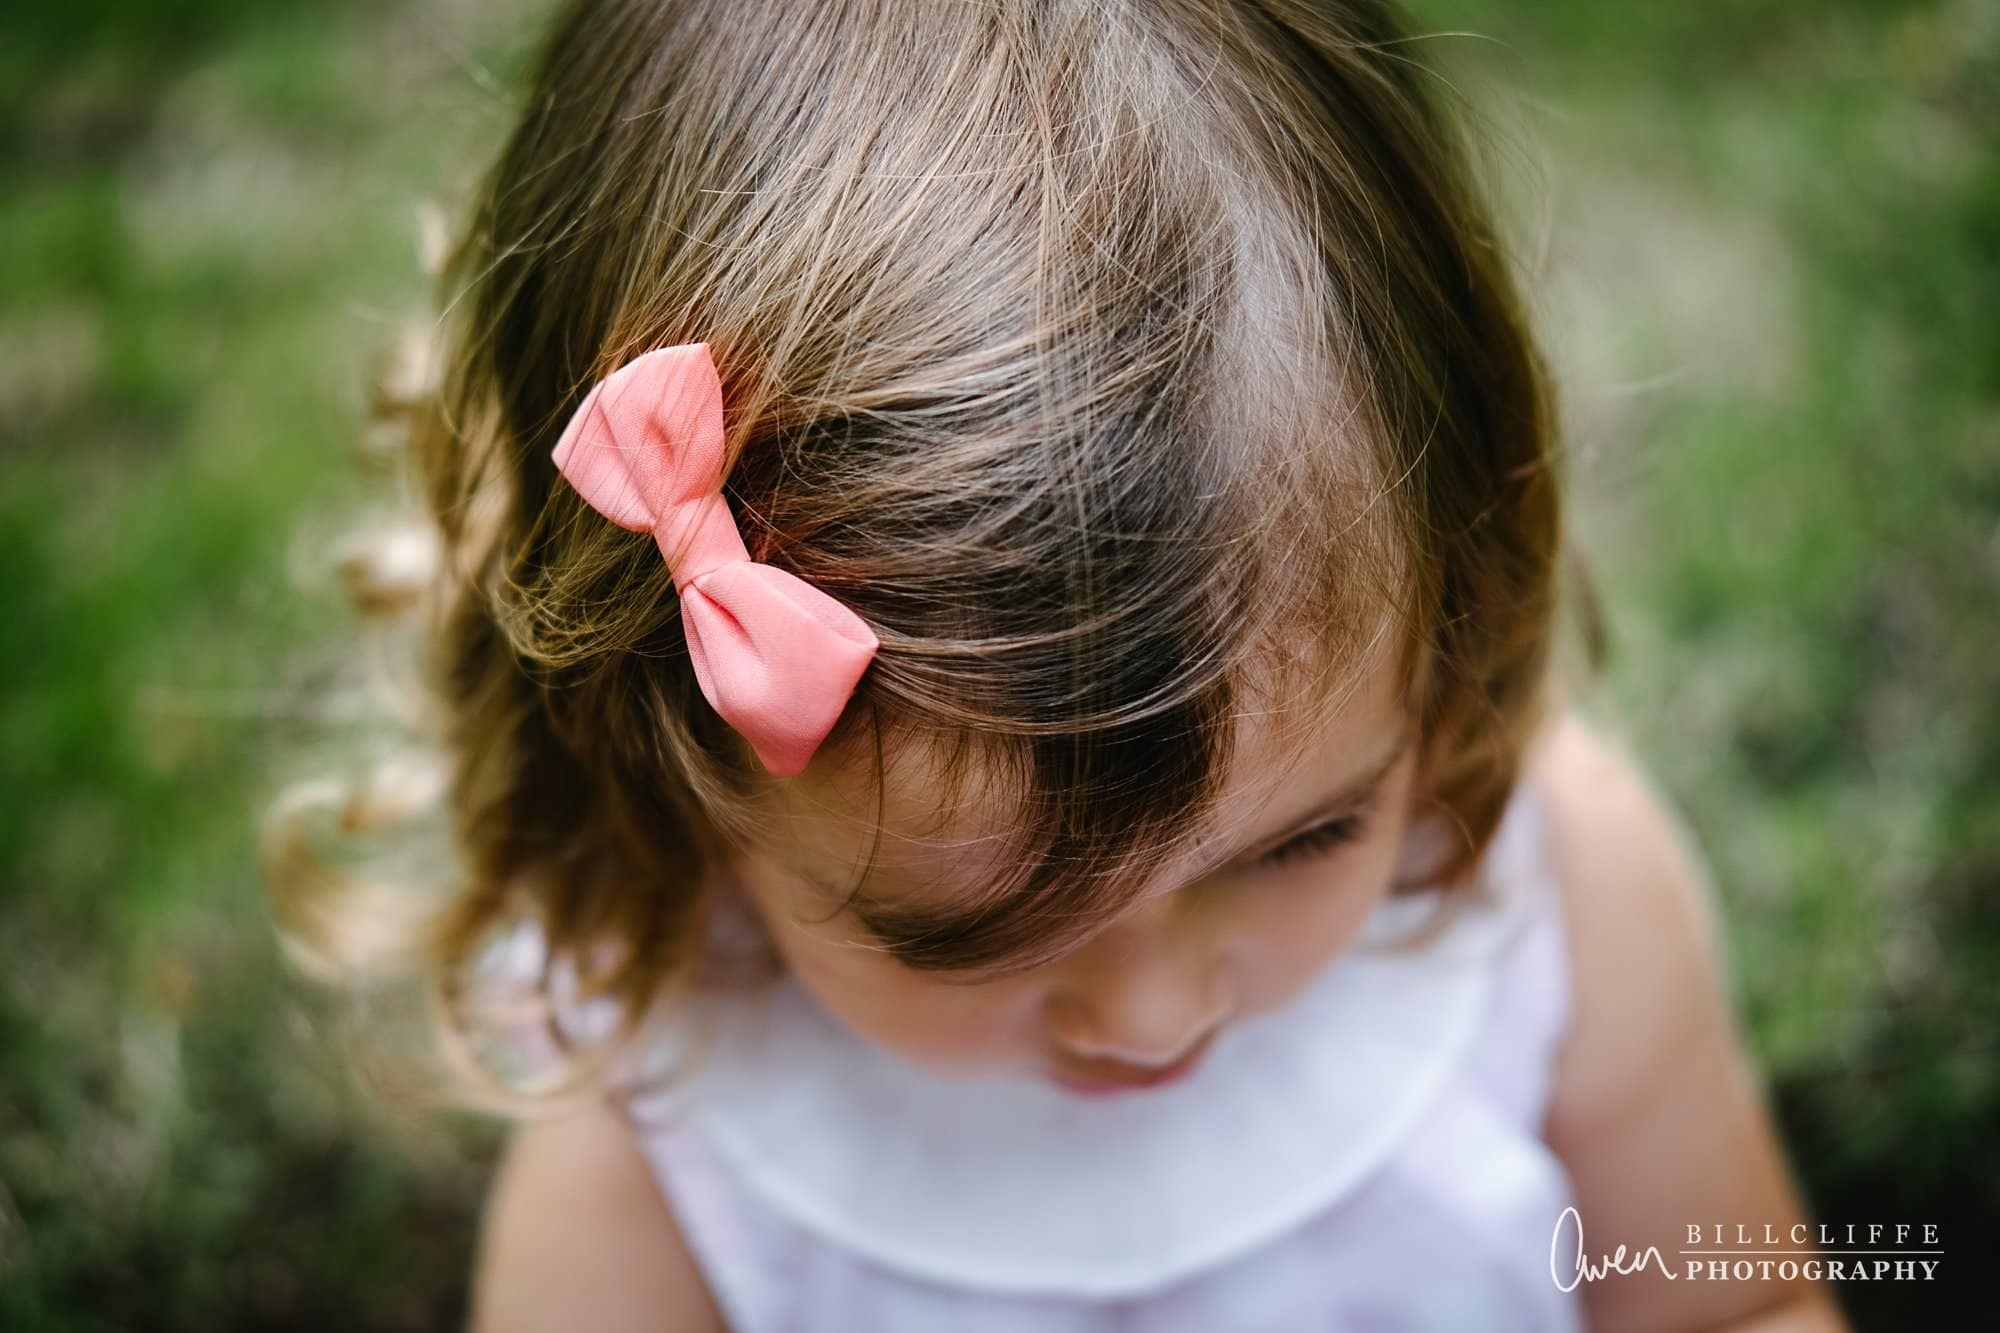 london family photographer london belgravia w1 017 - Belgravia Family Photography | The W Family